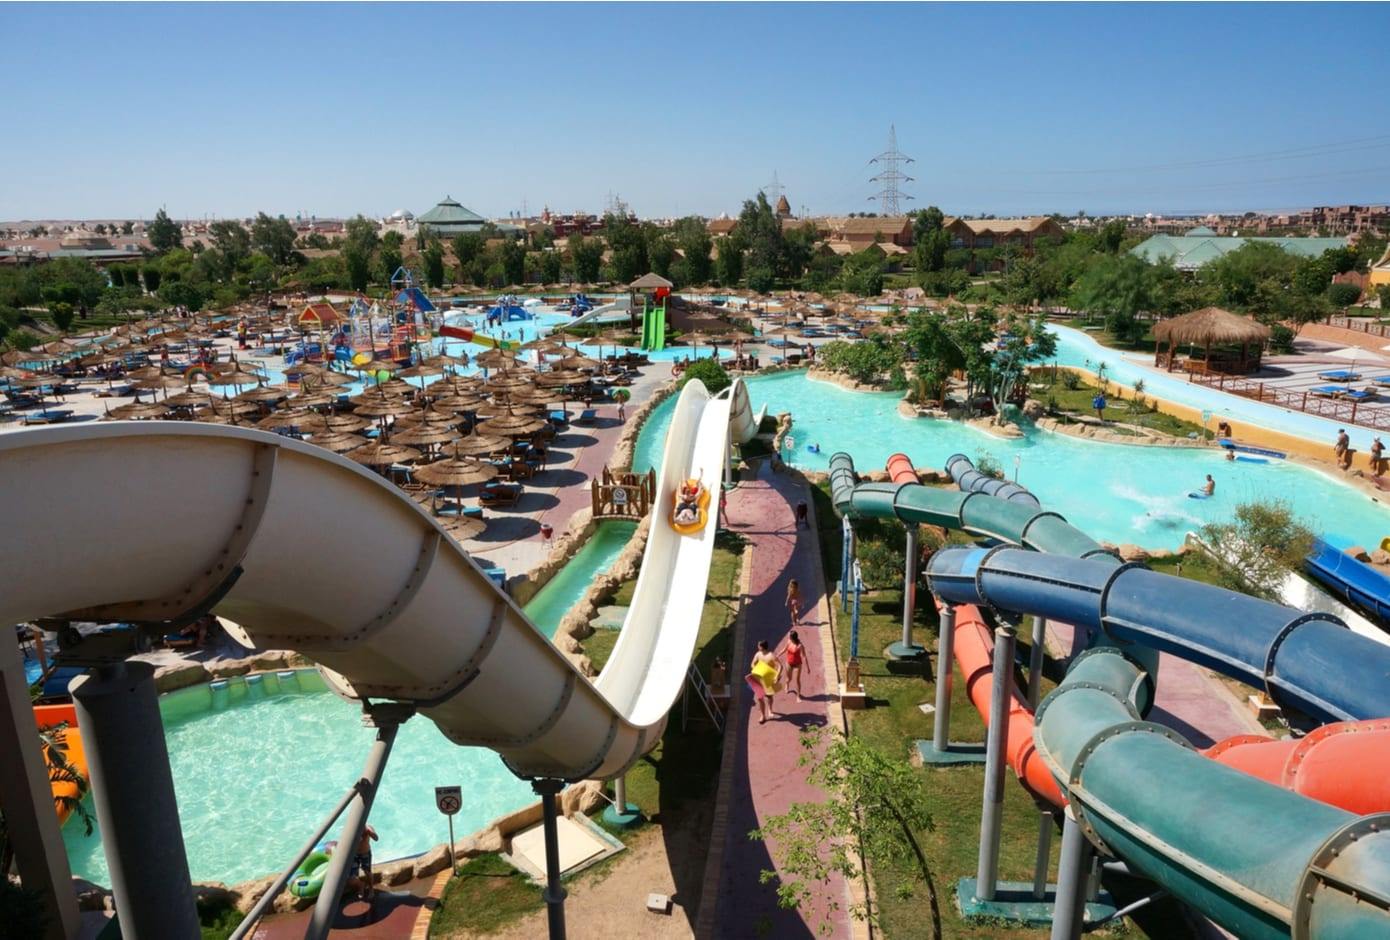 Water slides within the Jungle Aquapark Resort in Hurghada, Egypt